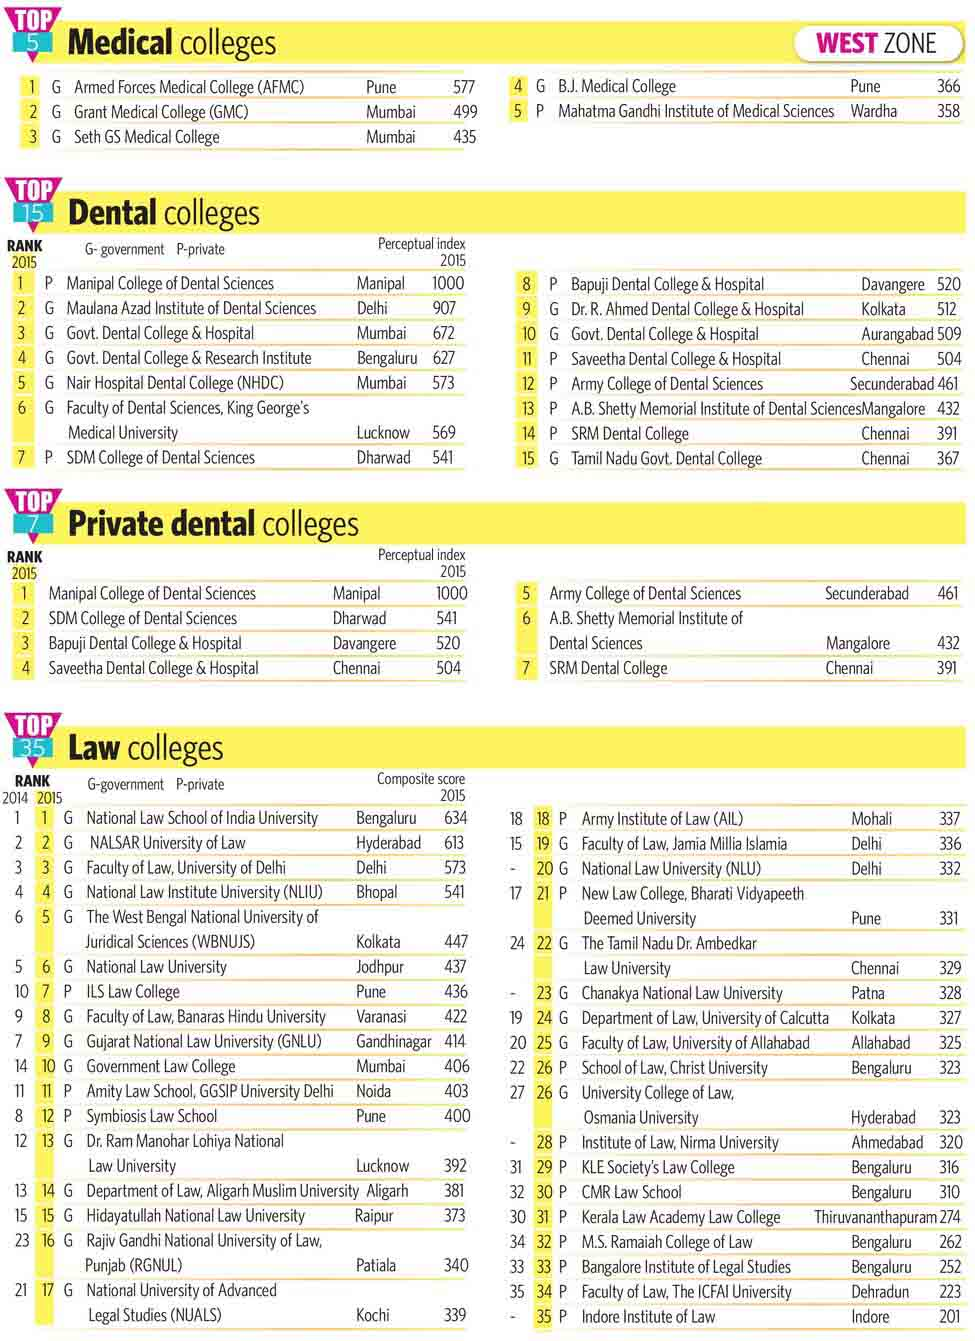 84-Medical-colleges